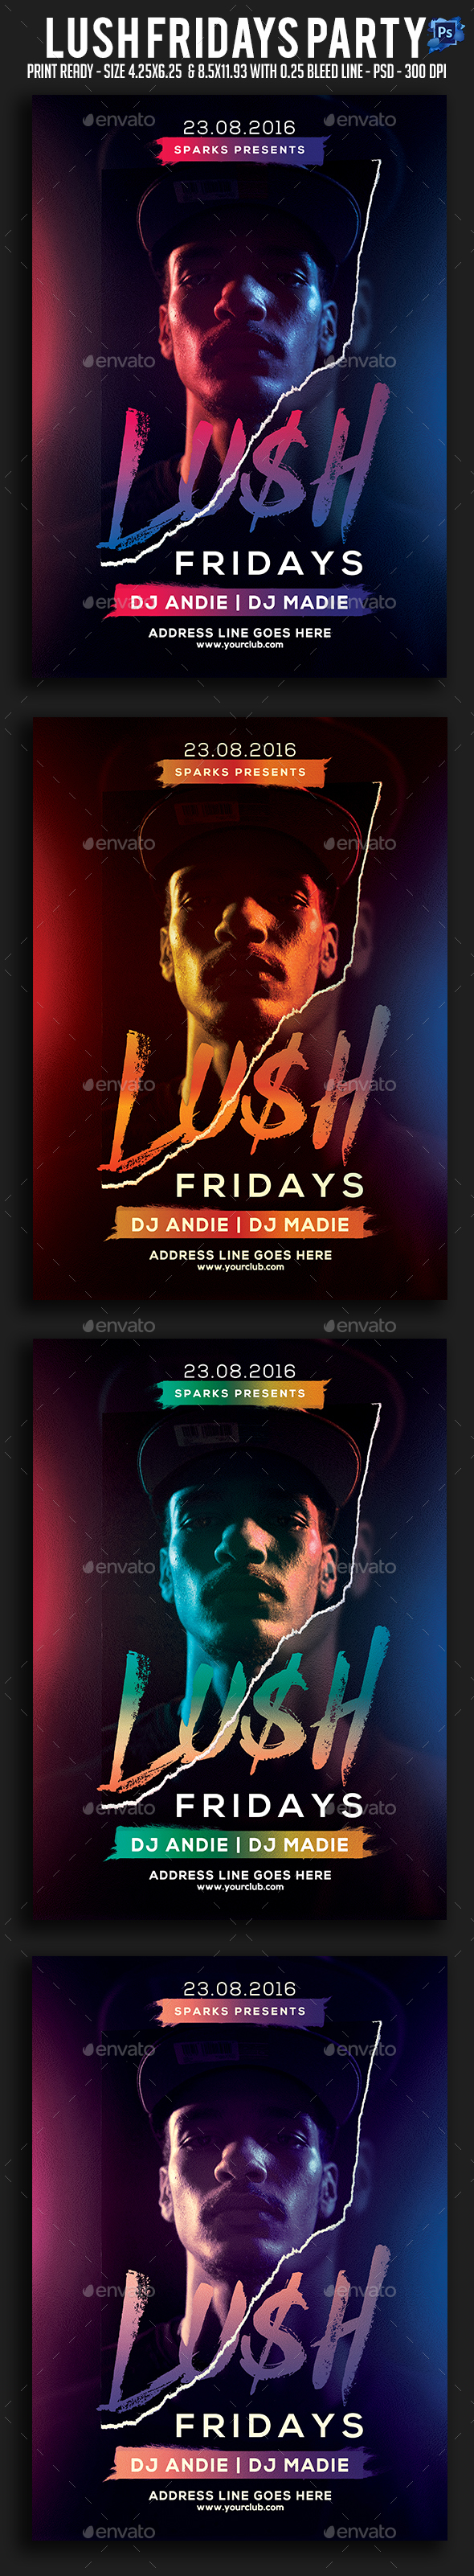 Lush Fridays Party Flyer - Clubs & Parties Events